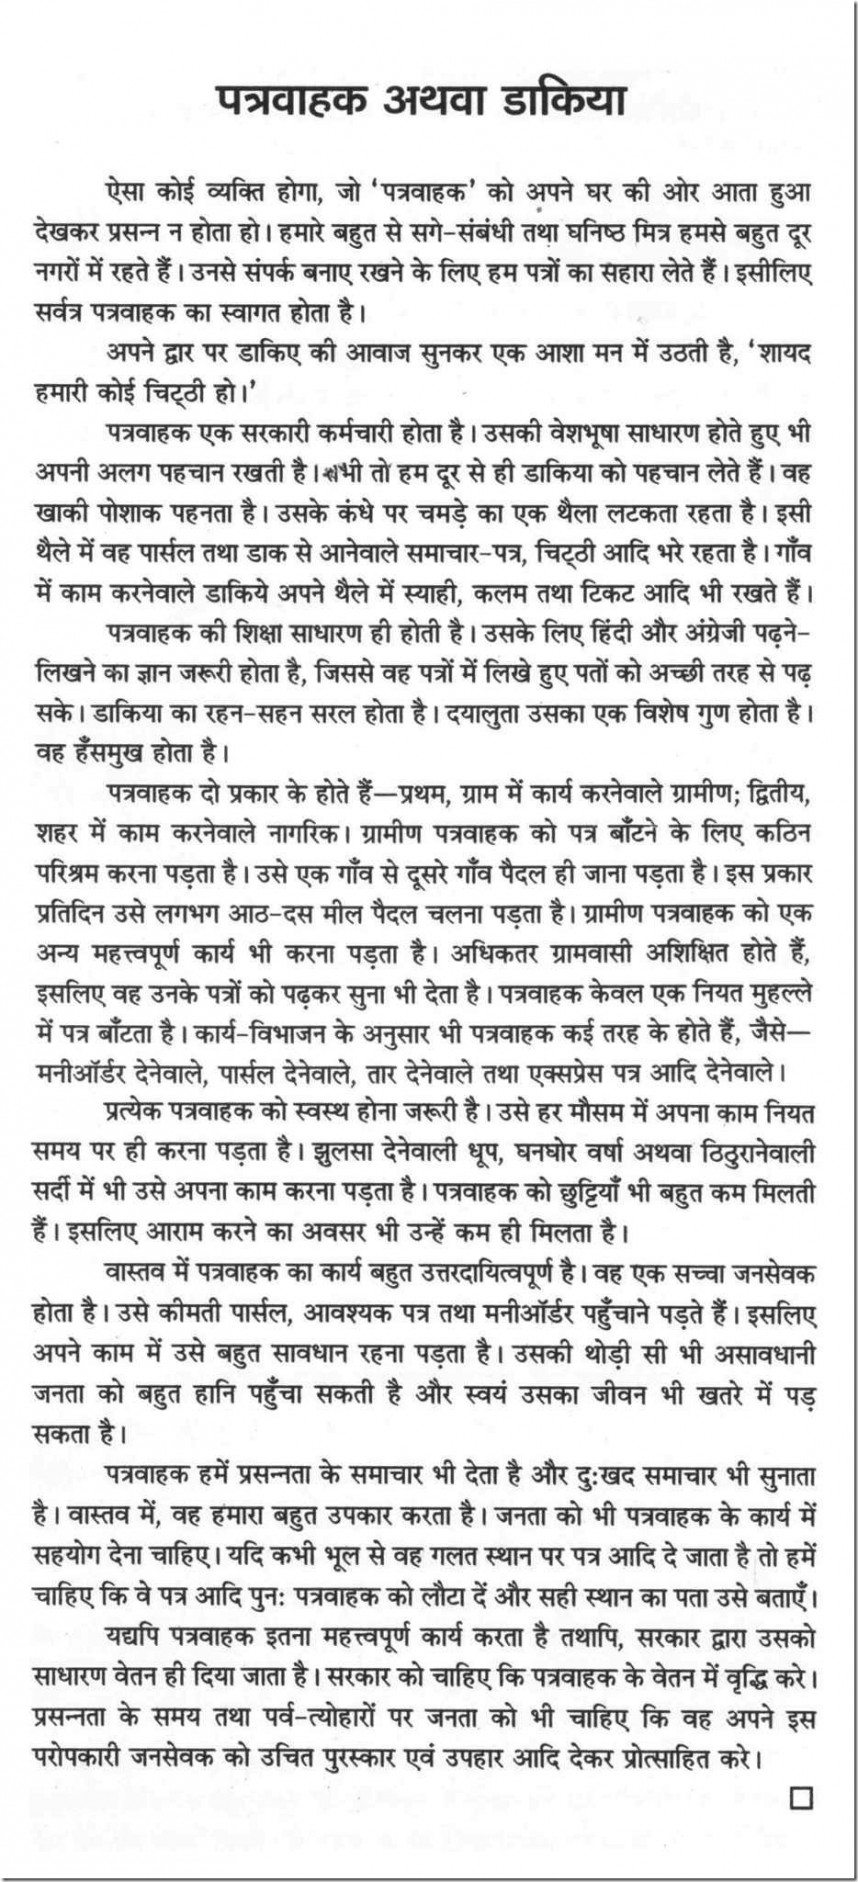 005 Hindi Literature Researchs 10024 Thumb Wonderful Research Papers